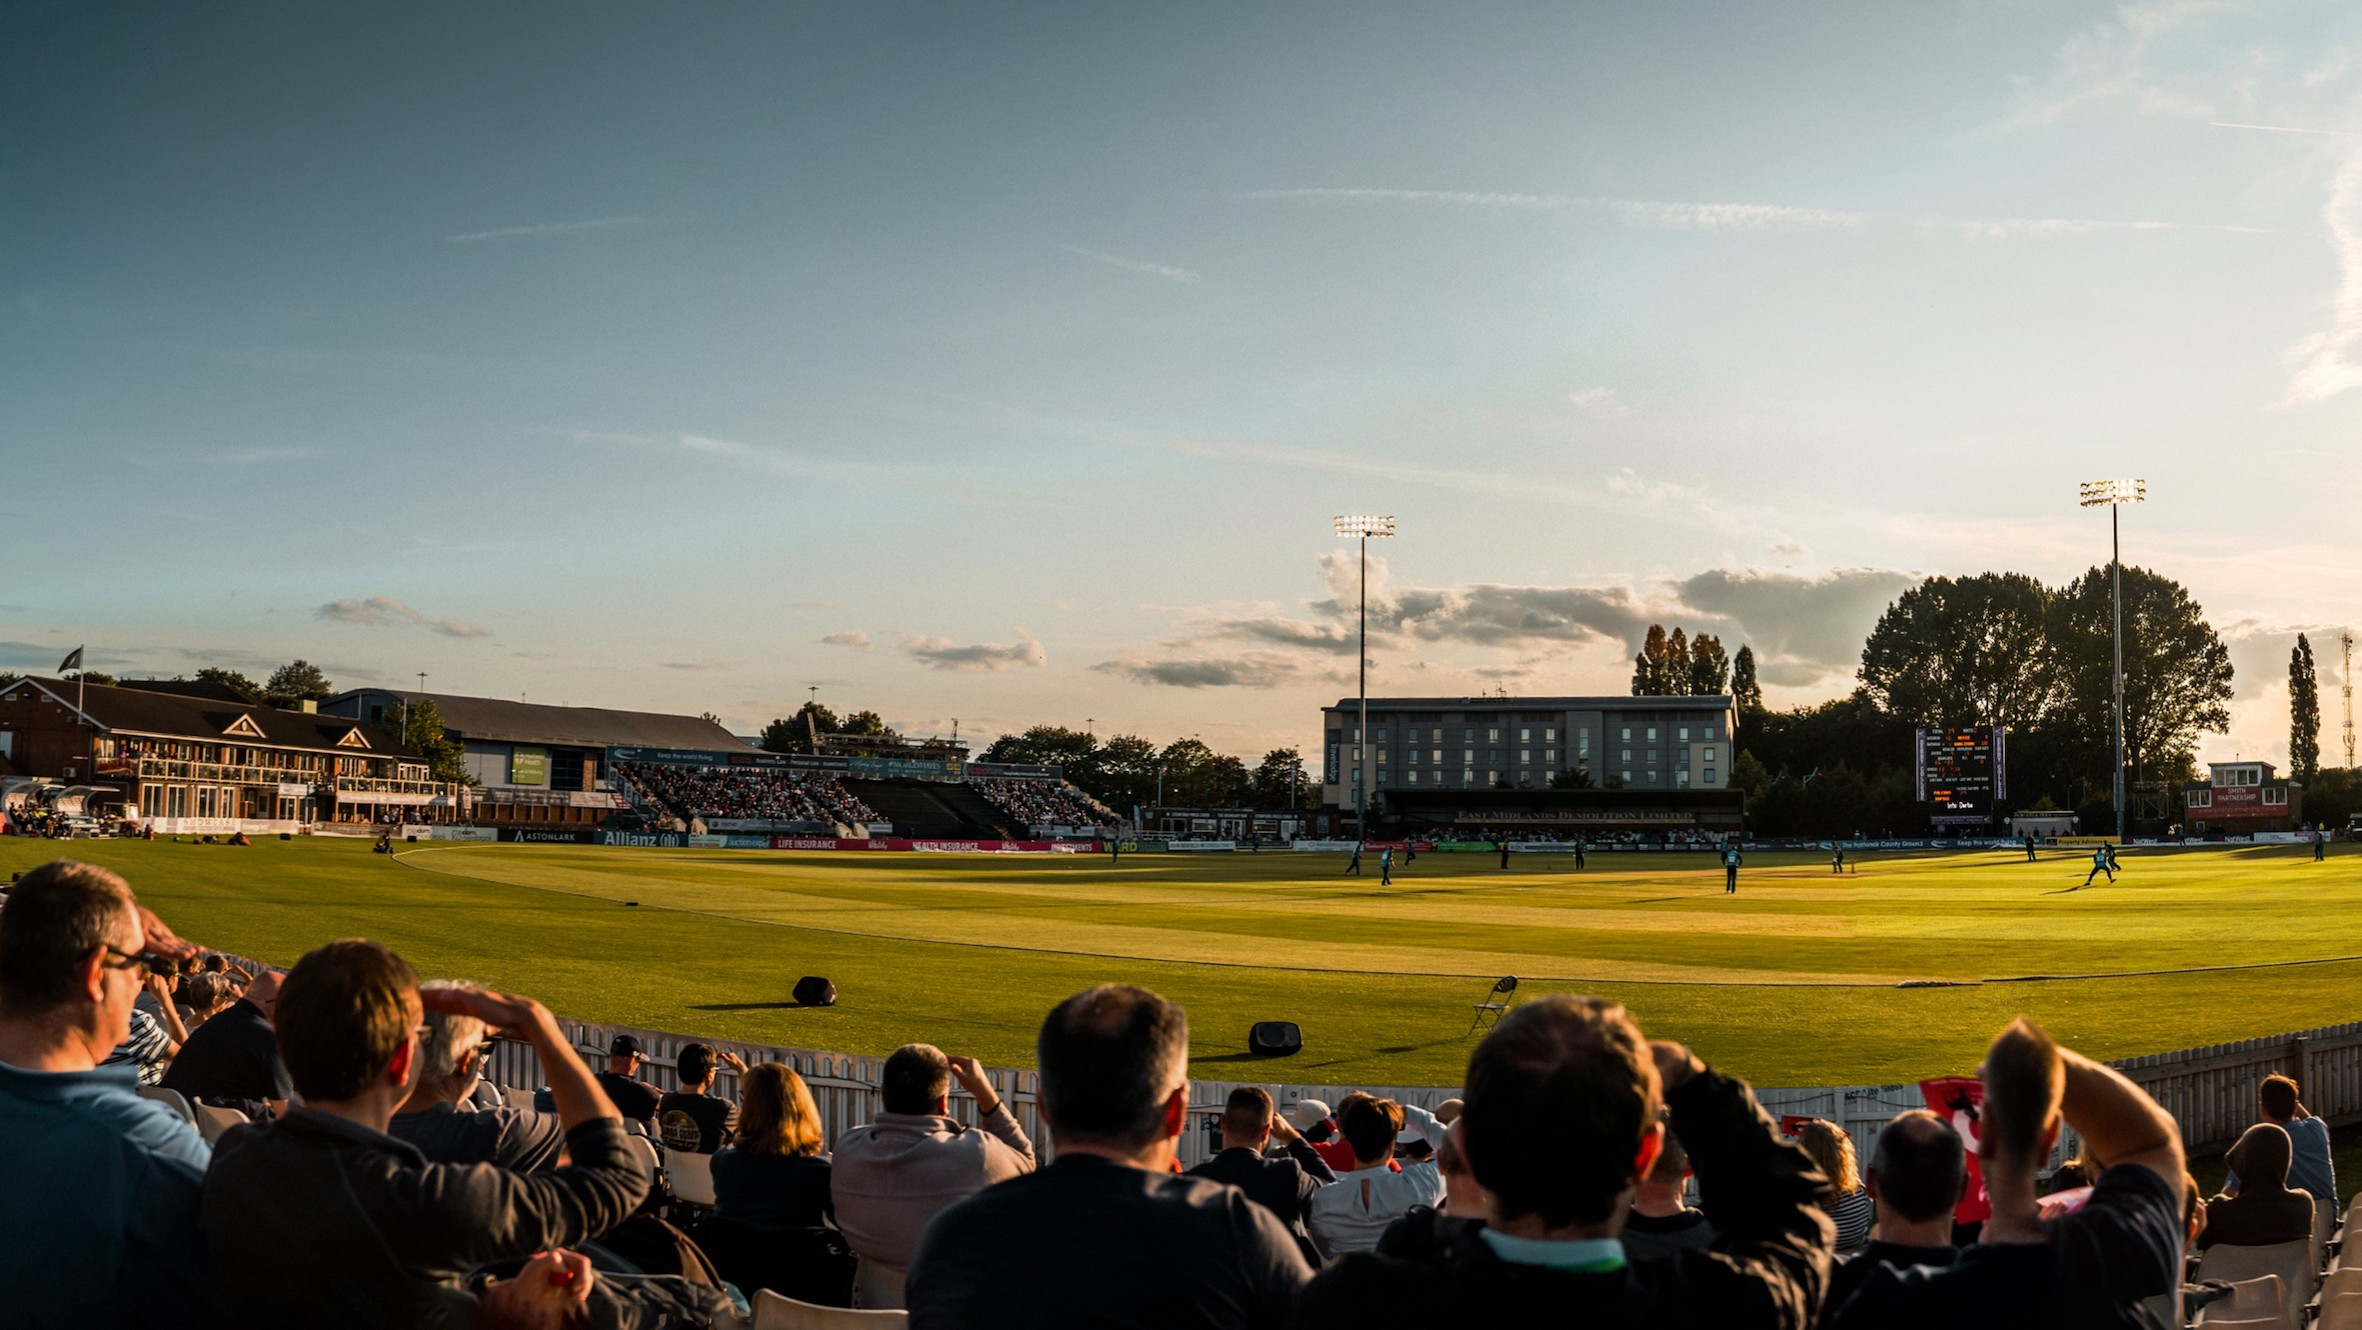 DERBY LAW FIRM ENTERS NEW INNINGS WITH DERBYSHIRE COUNTY CRICKET CLUB AFTER RENEWING PARTNERSHIP